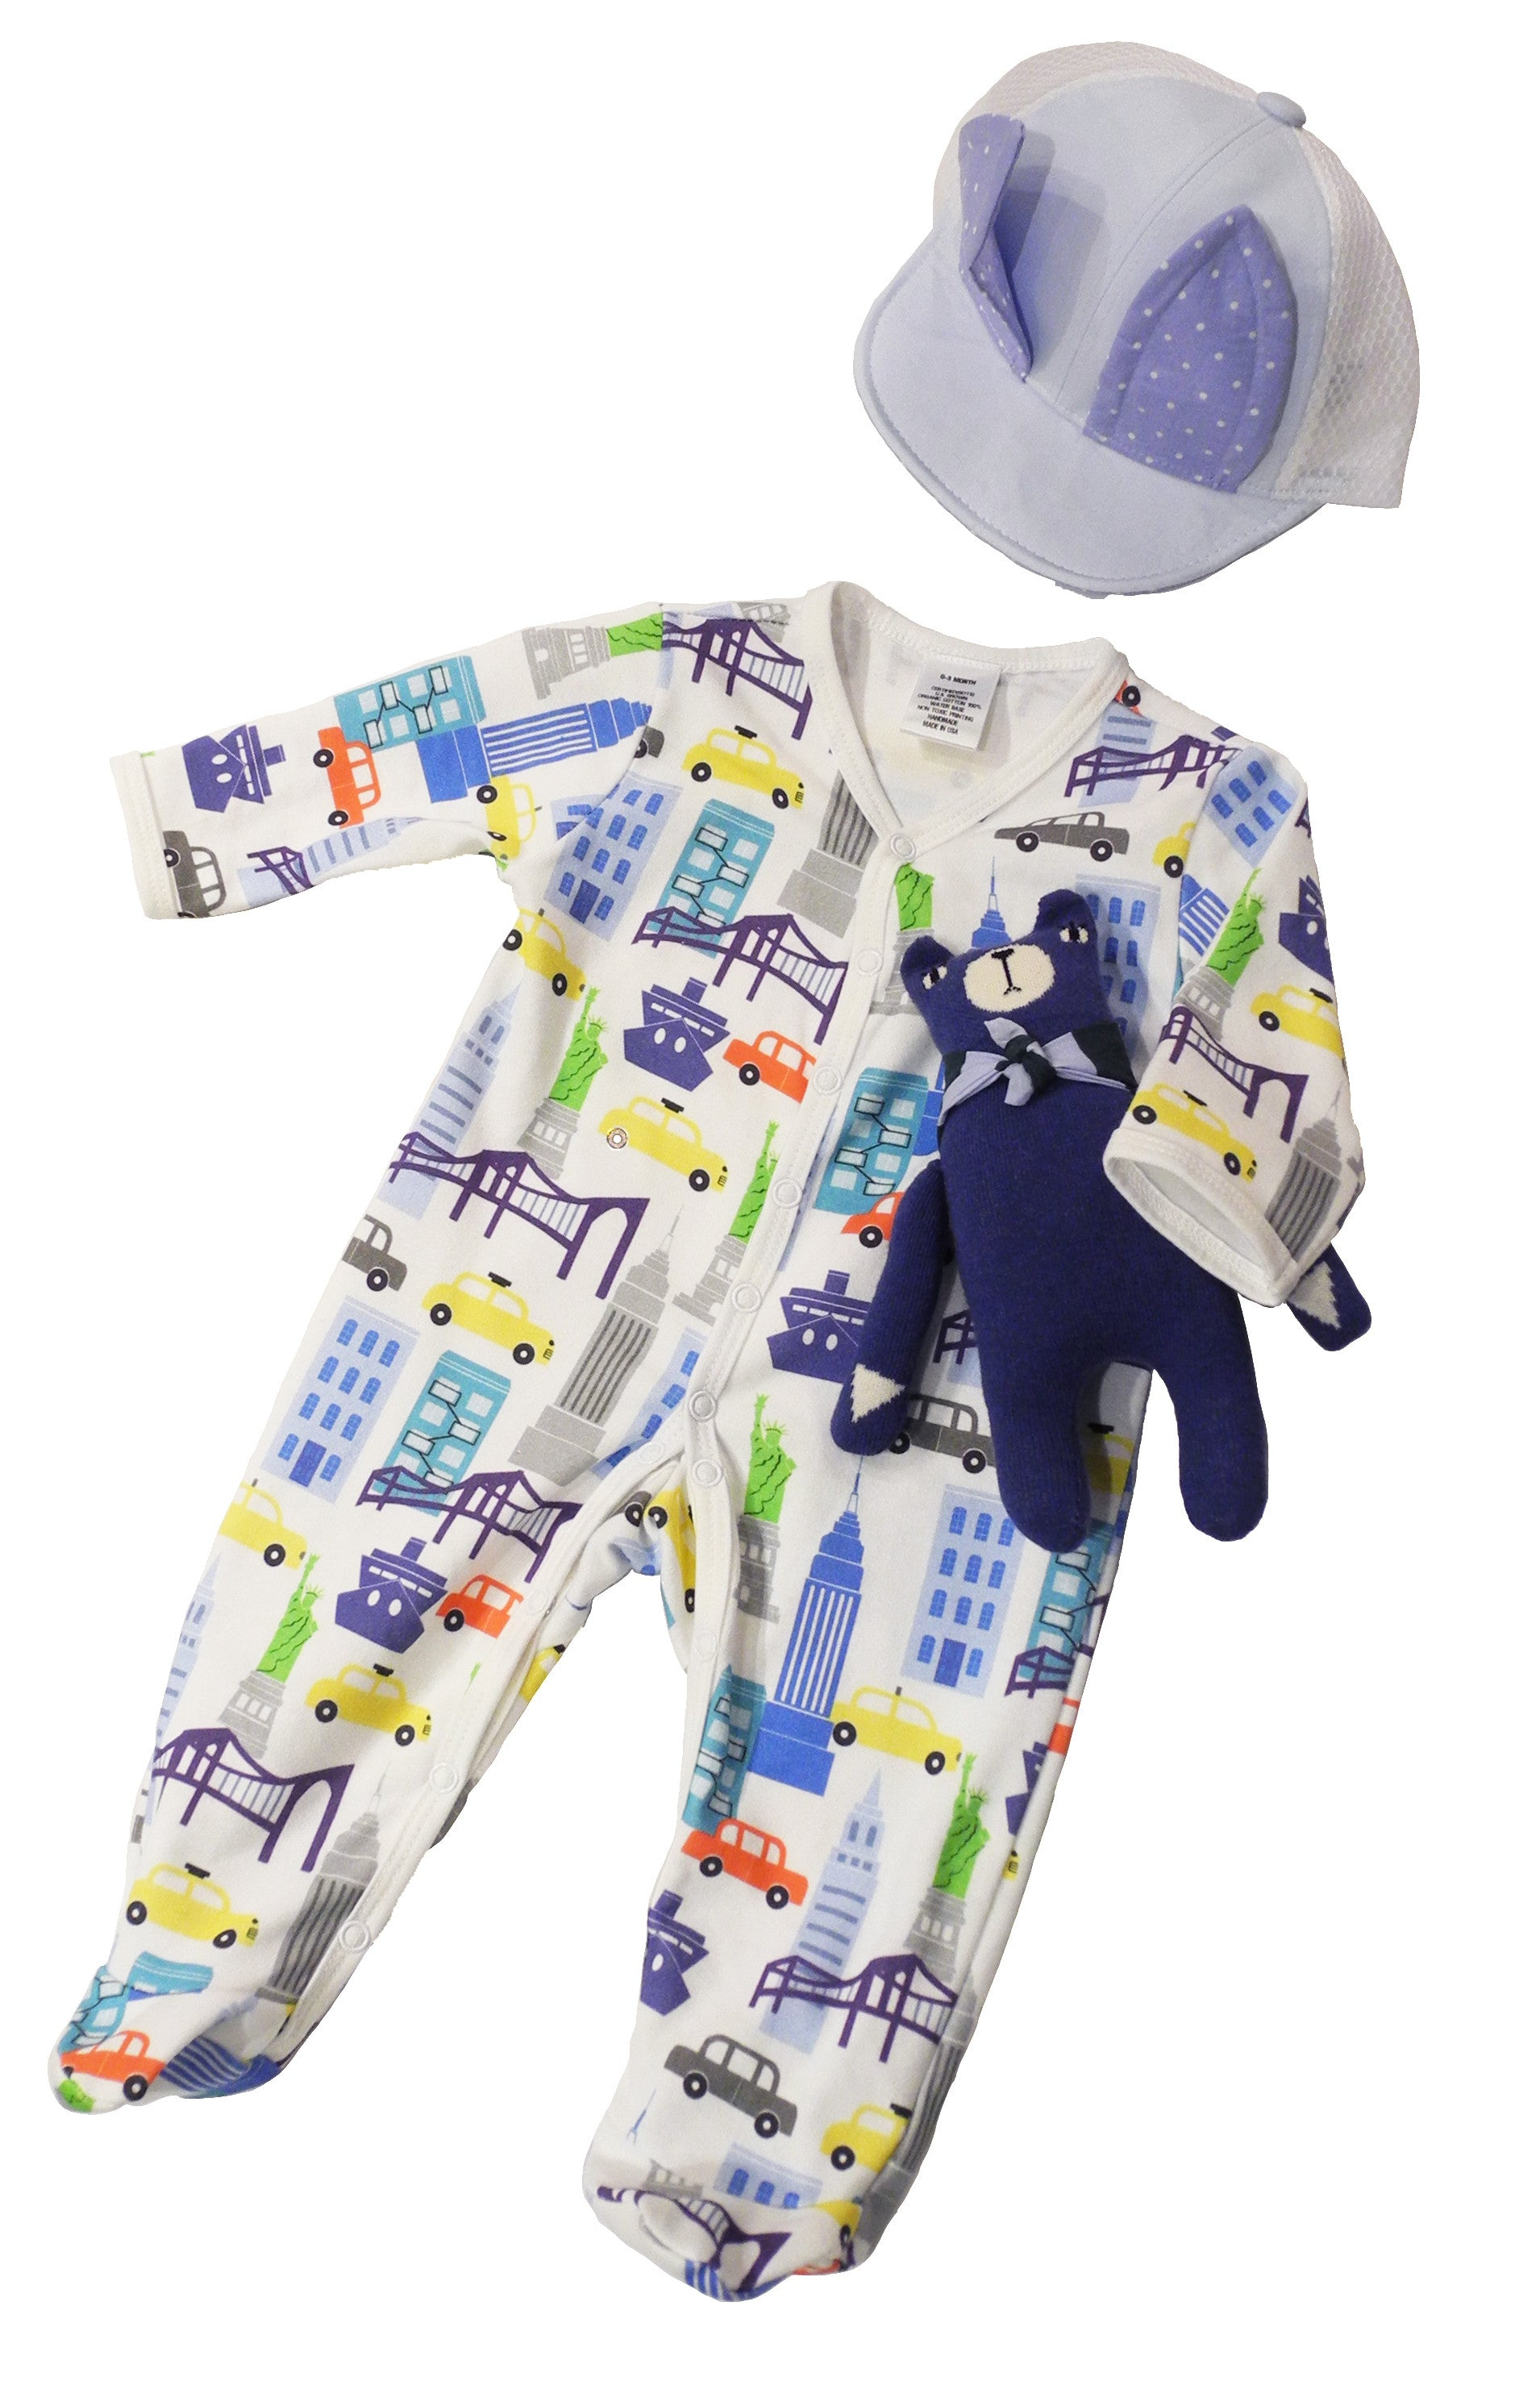 New York City Collection luckypalmtree Organic Baby and kids clothes